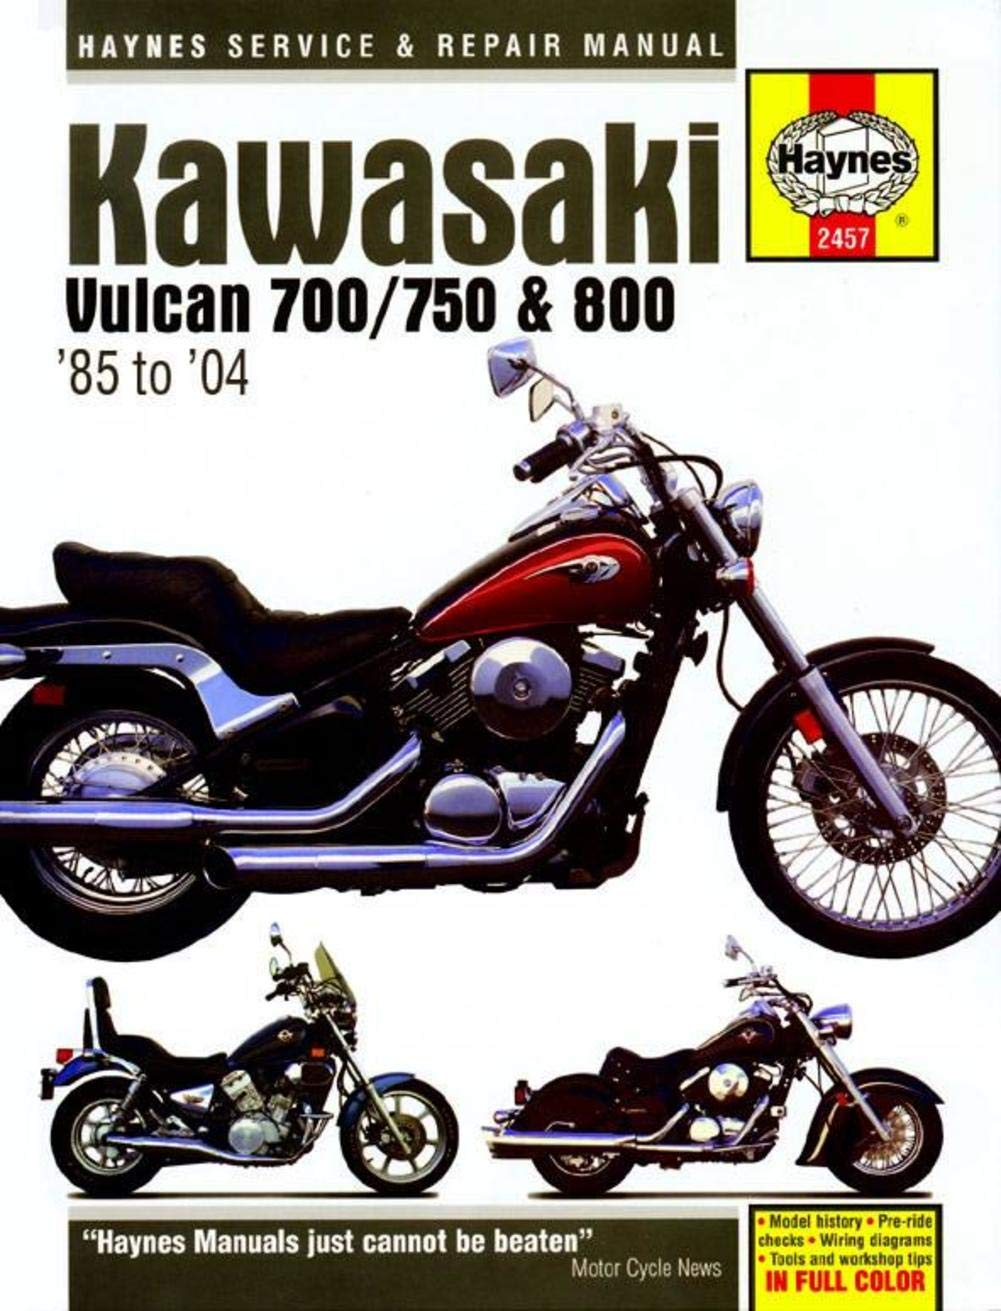 750 Kawasaki Motorcycle Wiring Diagram Reinvent Your 1980 Kz1000 Color Amazon Com Haynes Vulcan 700 800 Manual M2457 Automotive Rh 1982 Diagrams 200